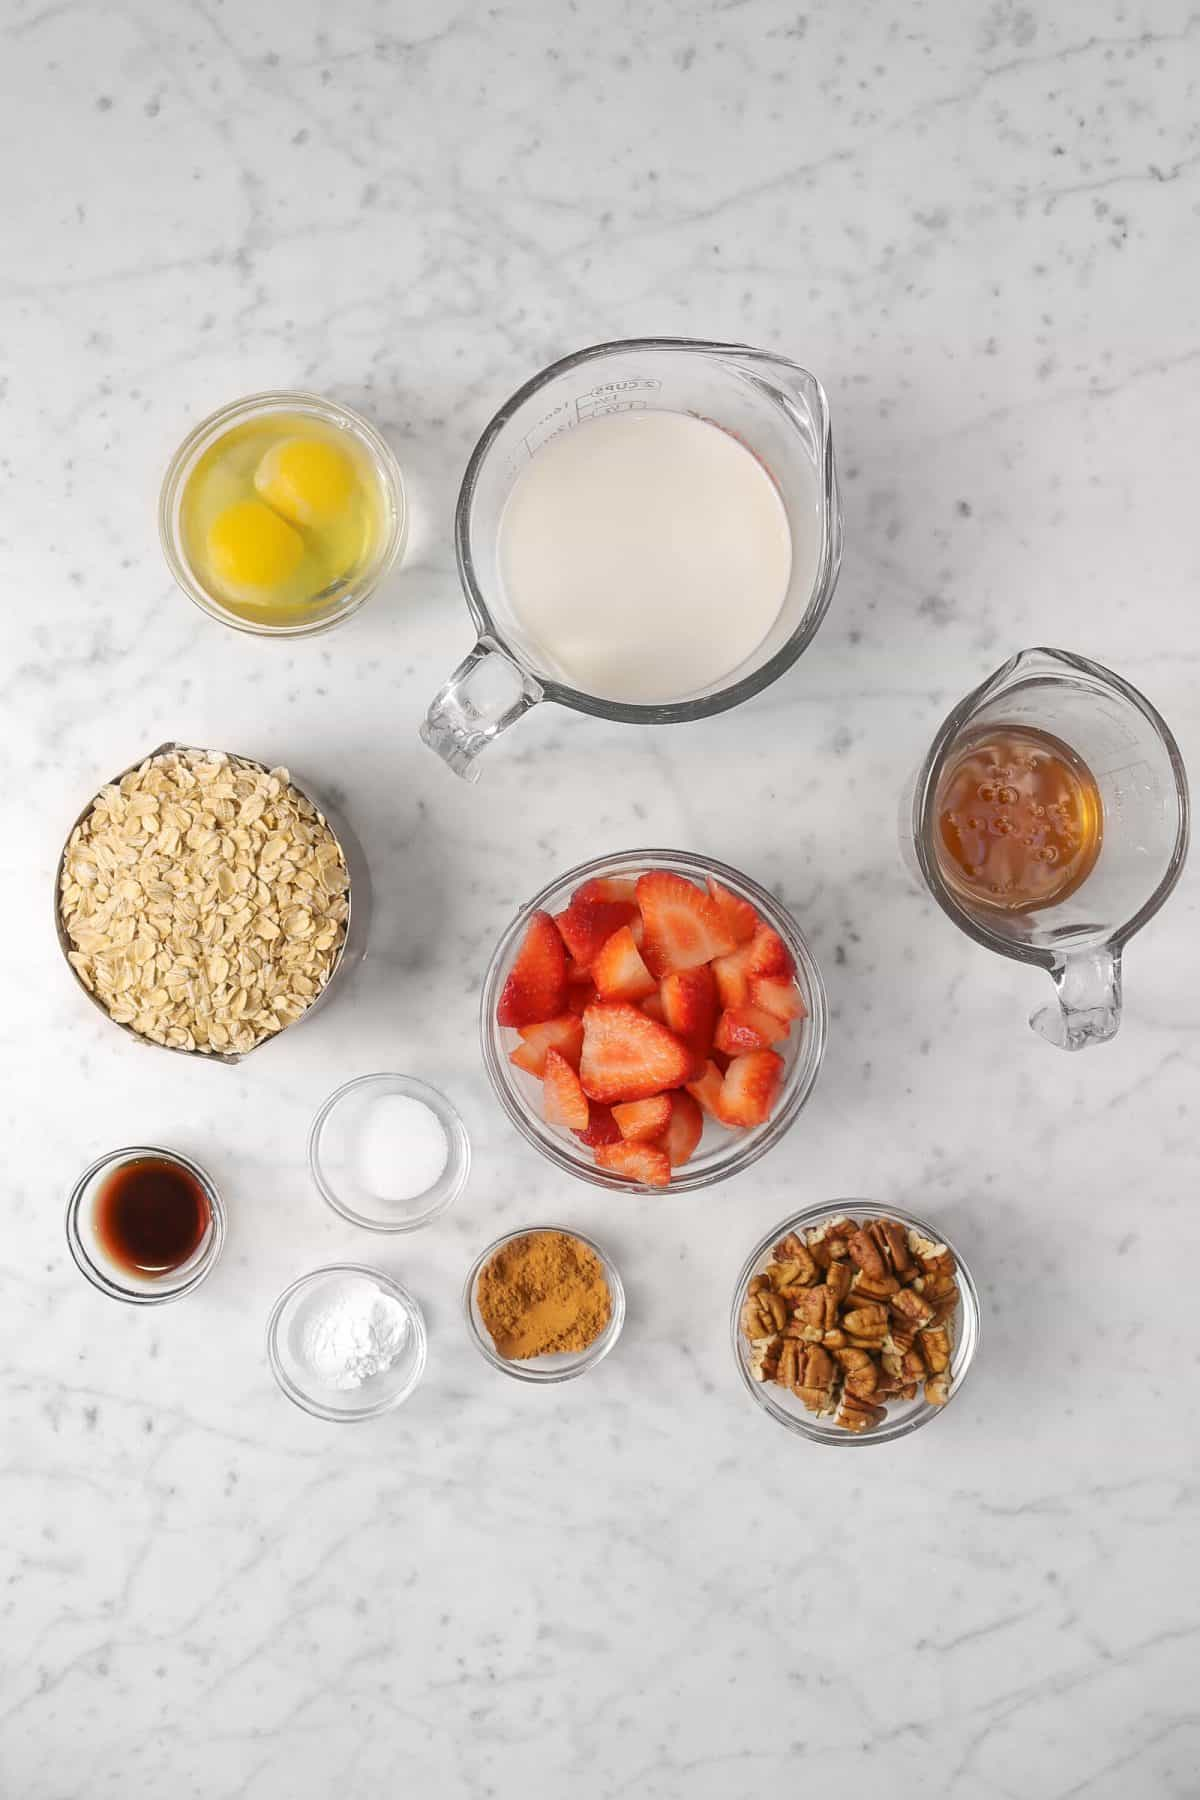 ingredients for strawberry oatmeal bake on a marble counter